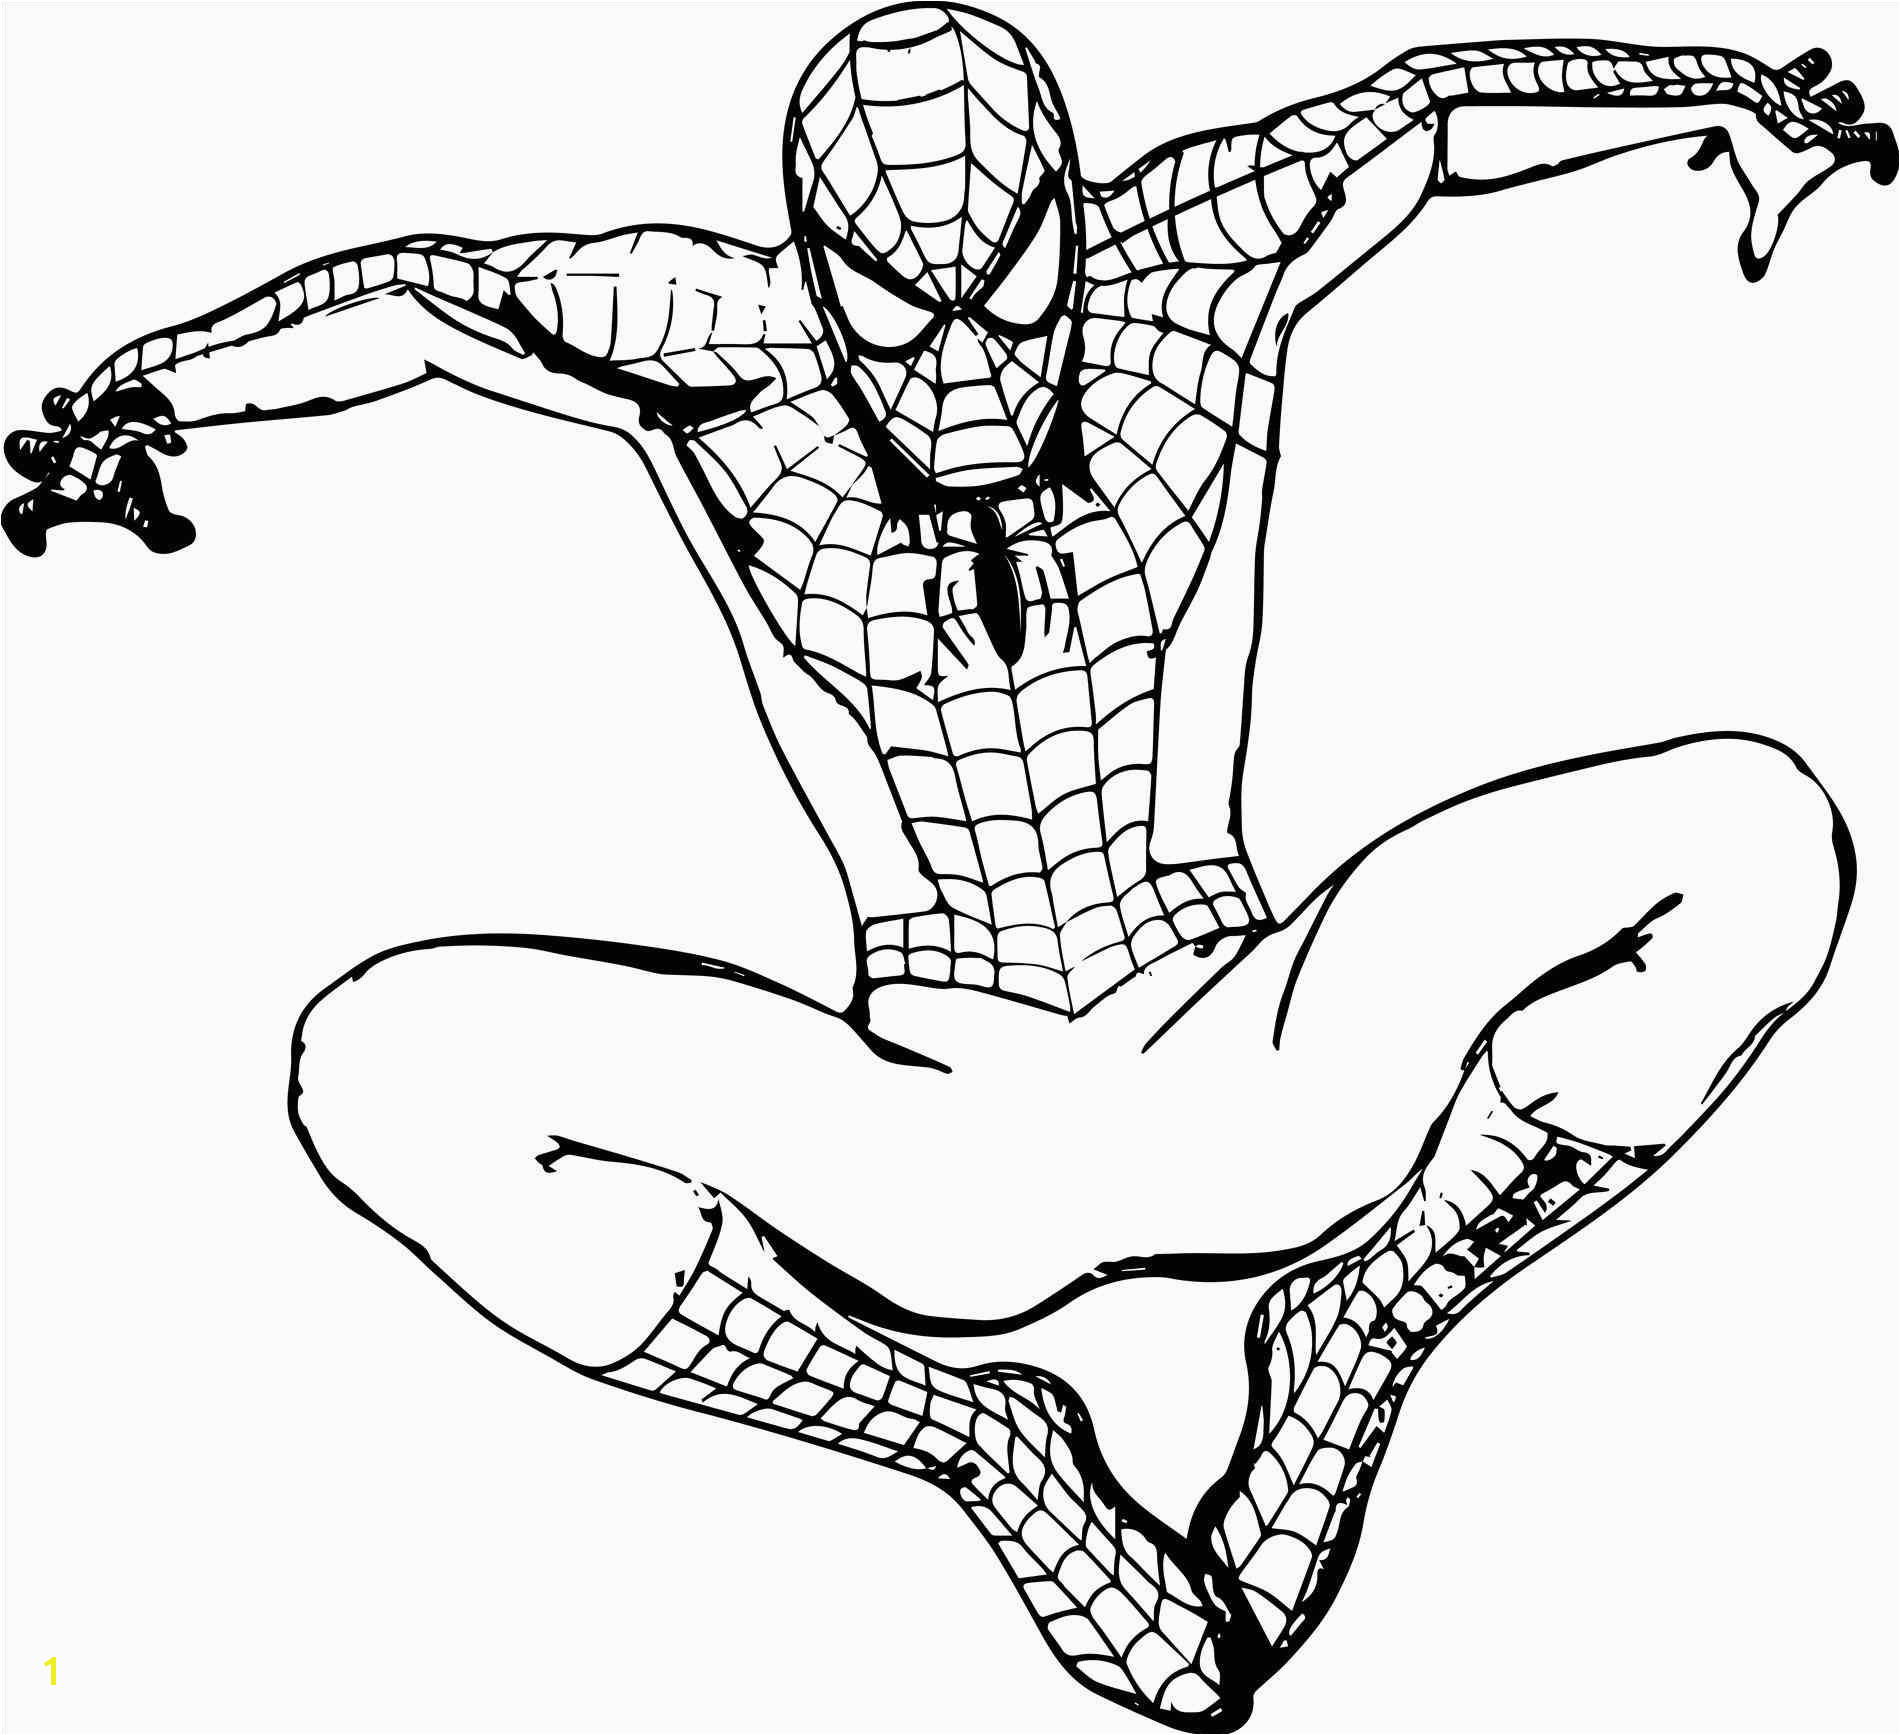 Spiderman Coloring Pages Free Spiderman Coloring Pages Luxury 0 0d Spiderman Rituals You Should